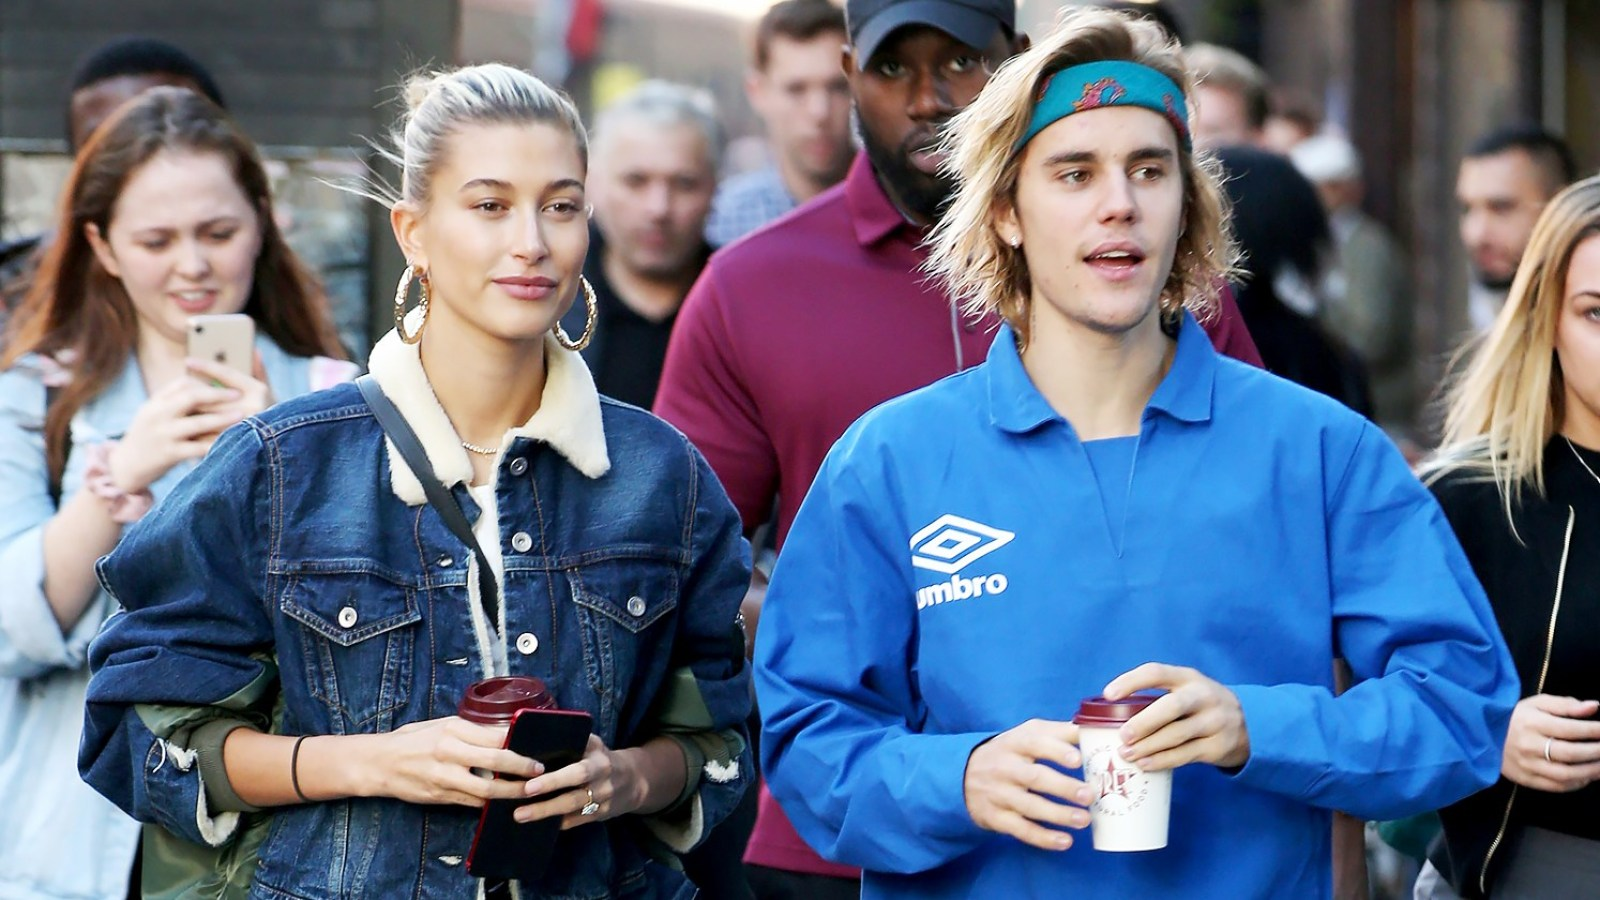 Justin Bieber Spills Beans On Having Kids With Hailey Bieber! 'It's Completely On Her